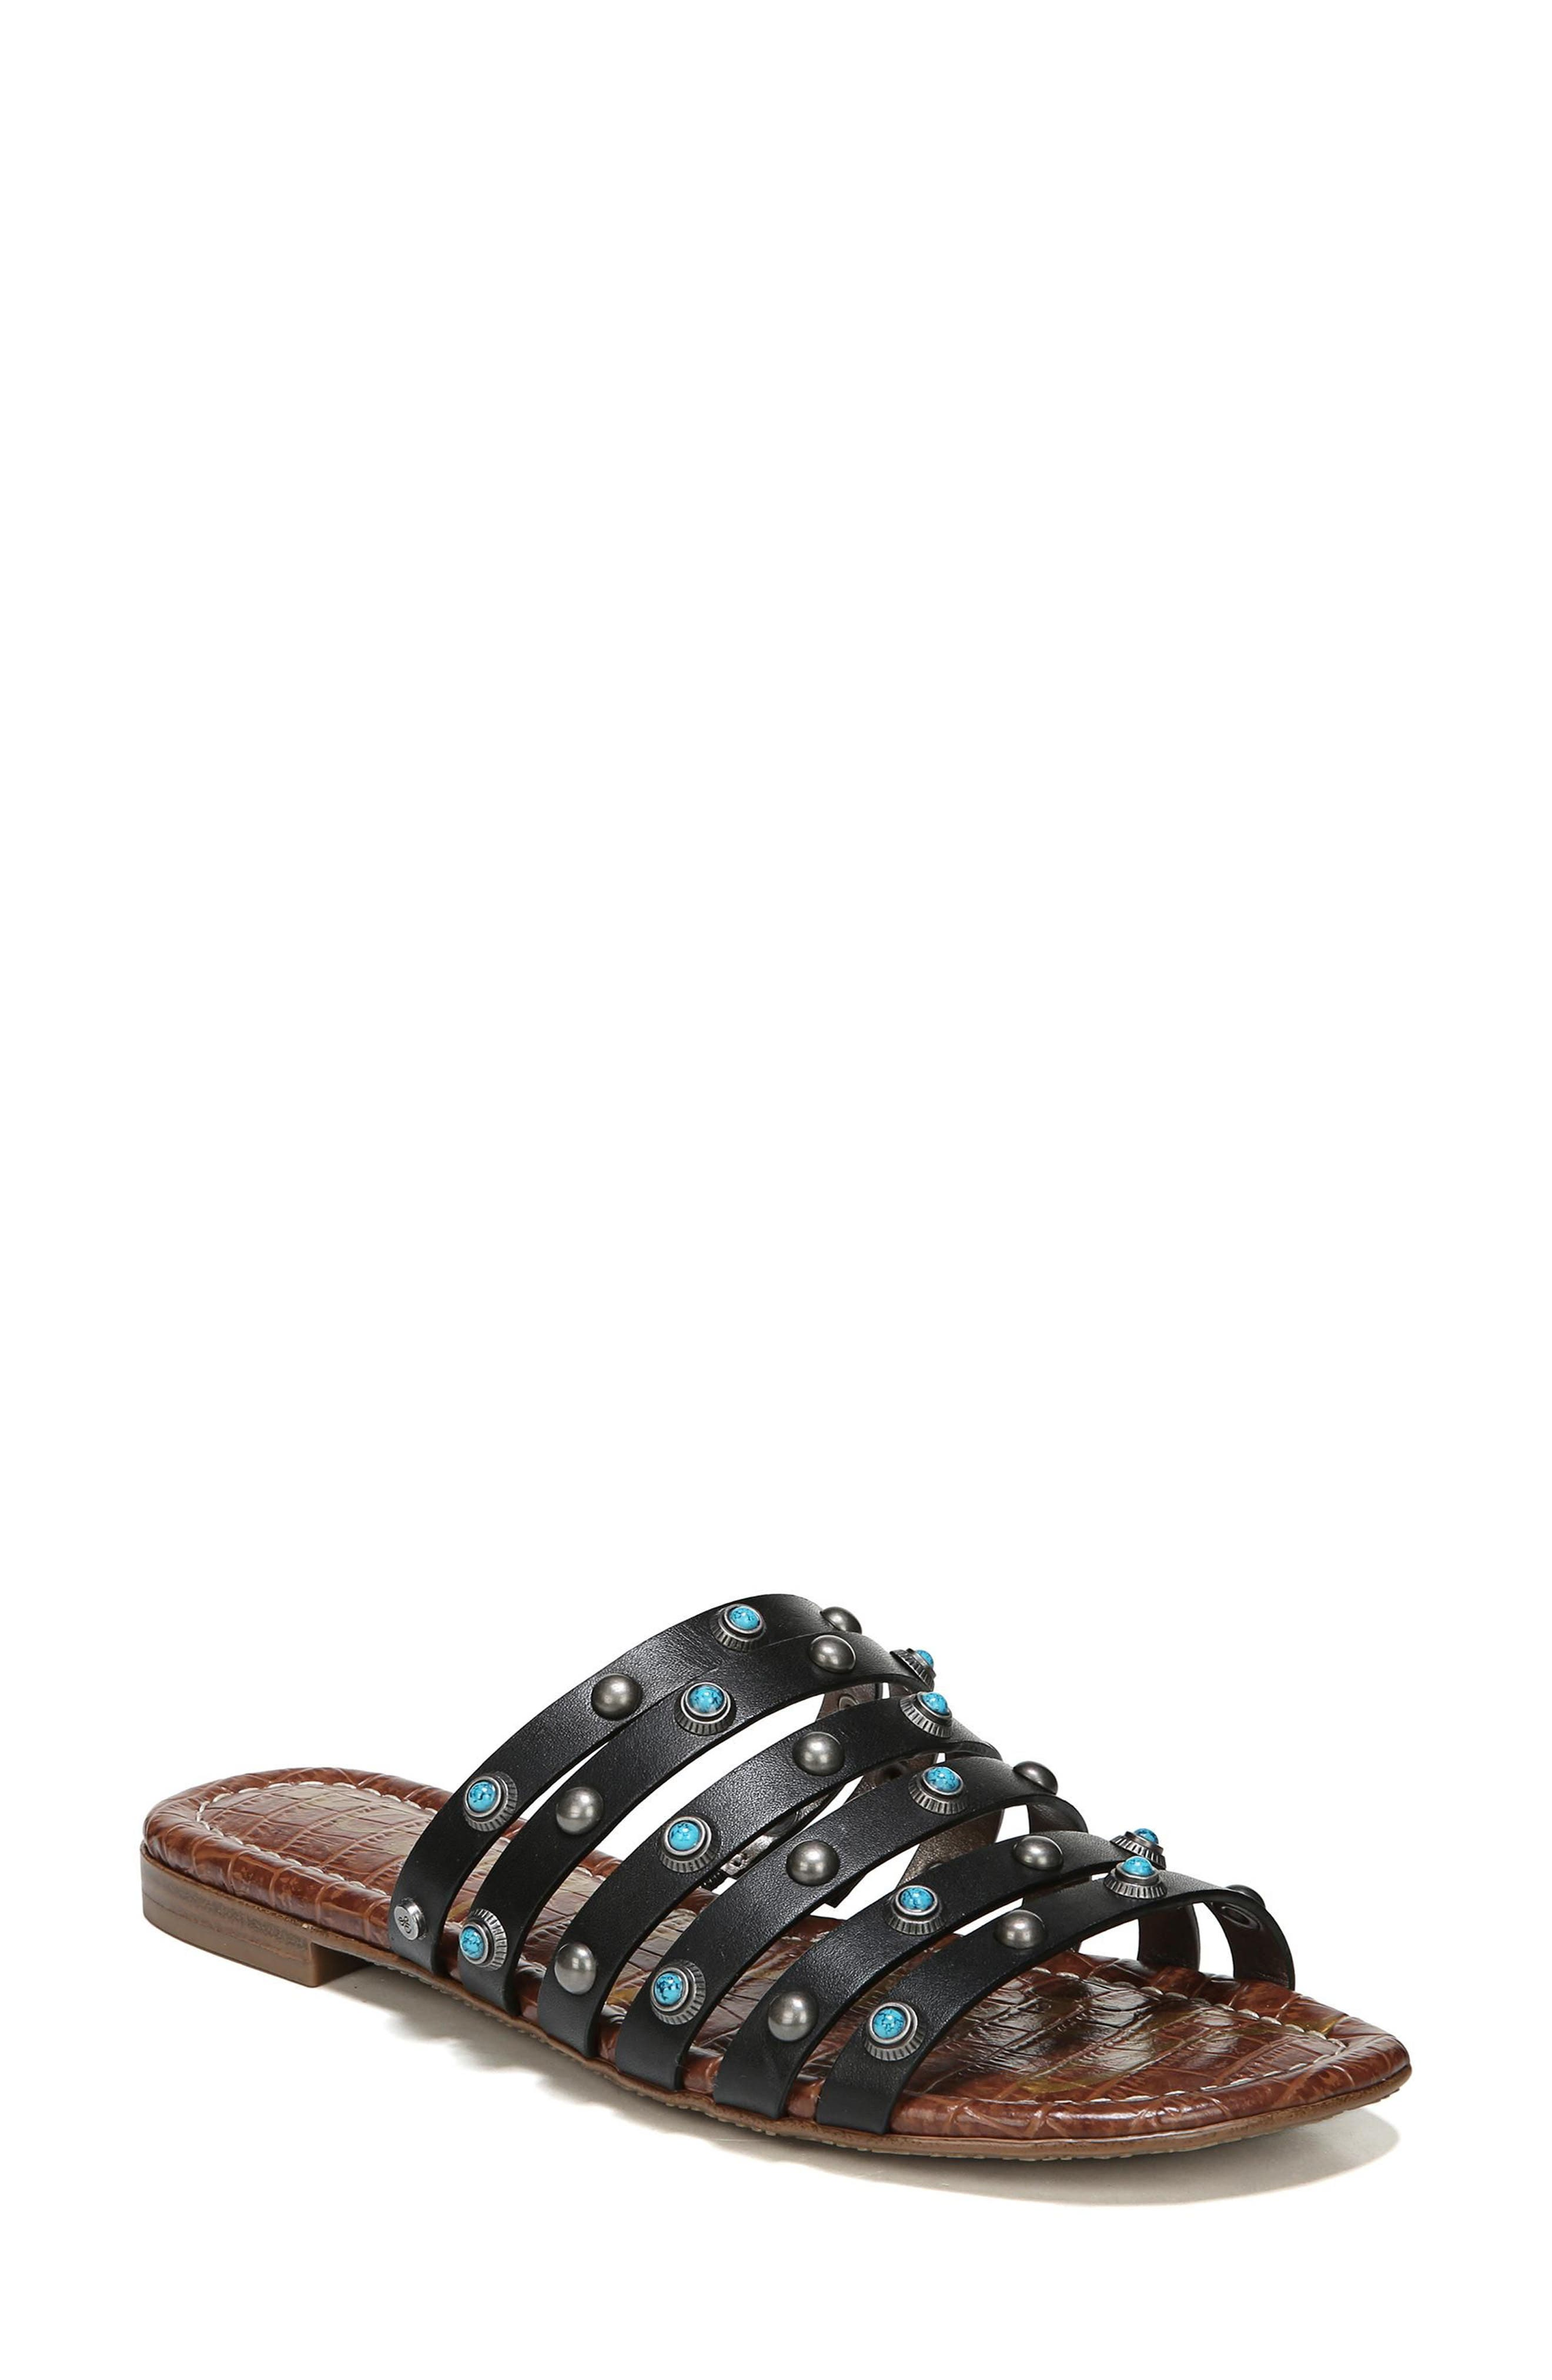 Brea Studded Slide Sandal,                         Main,                         color,